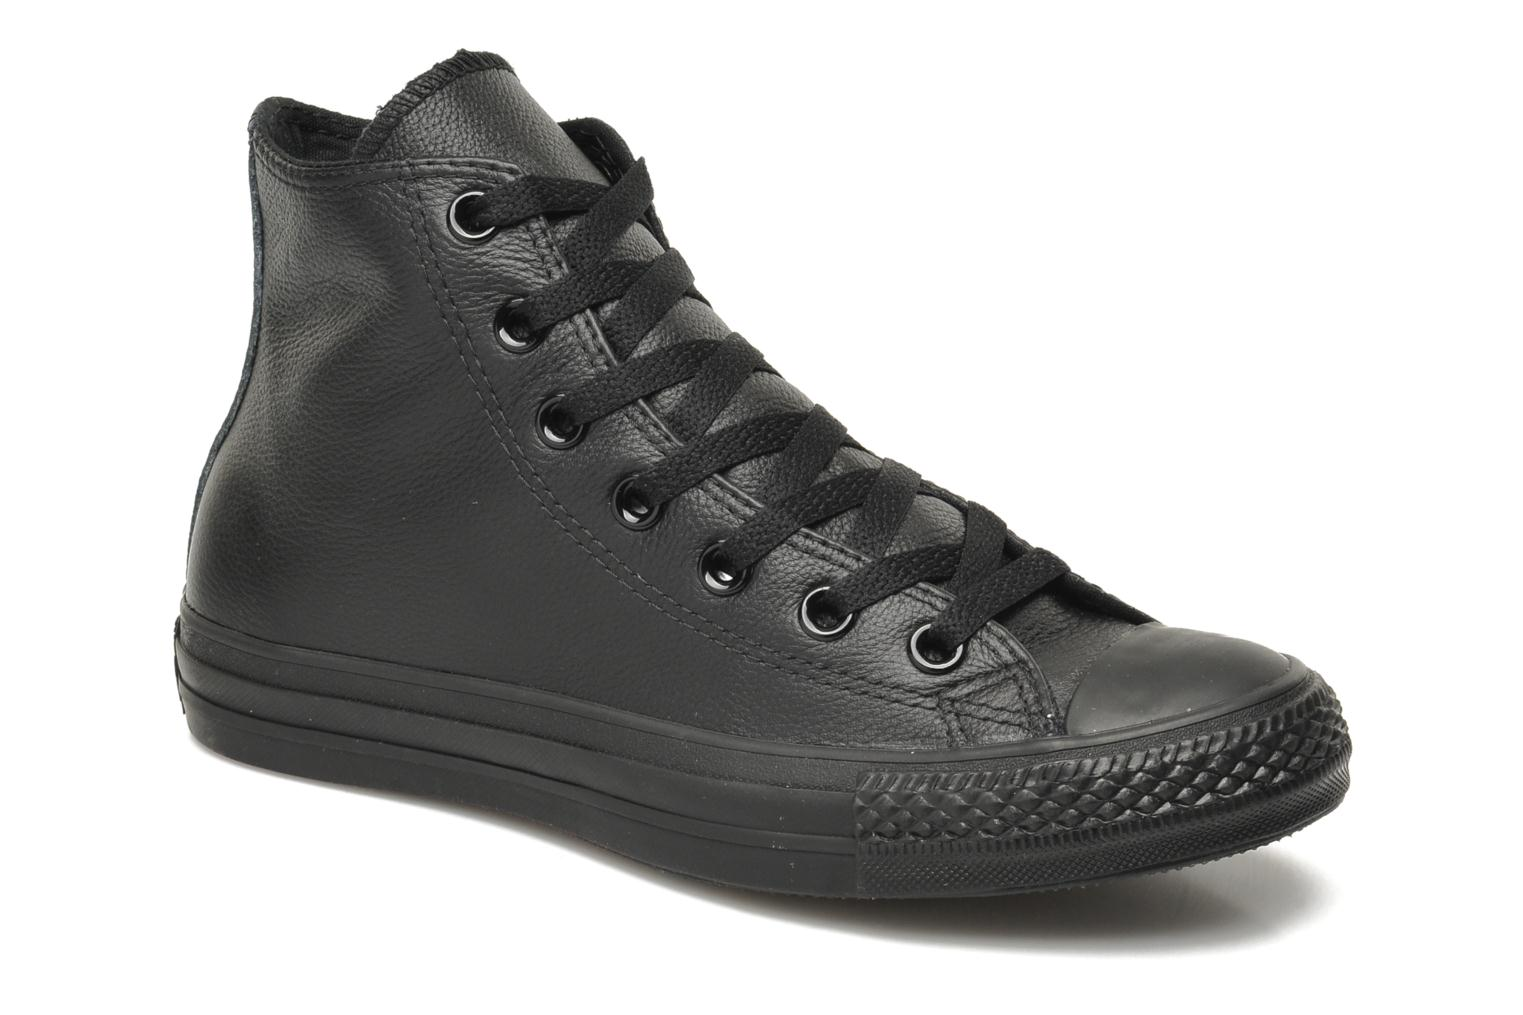 converse-chucks all star high-damen-schwarz-135251c-schwarze-sneakers-damen